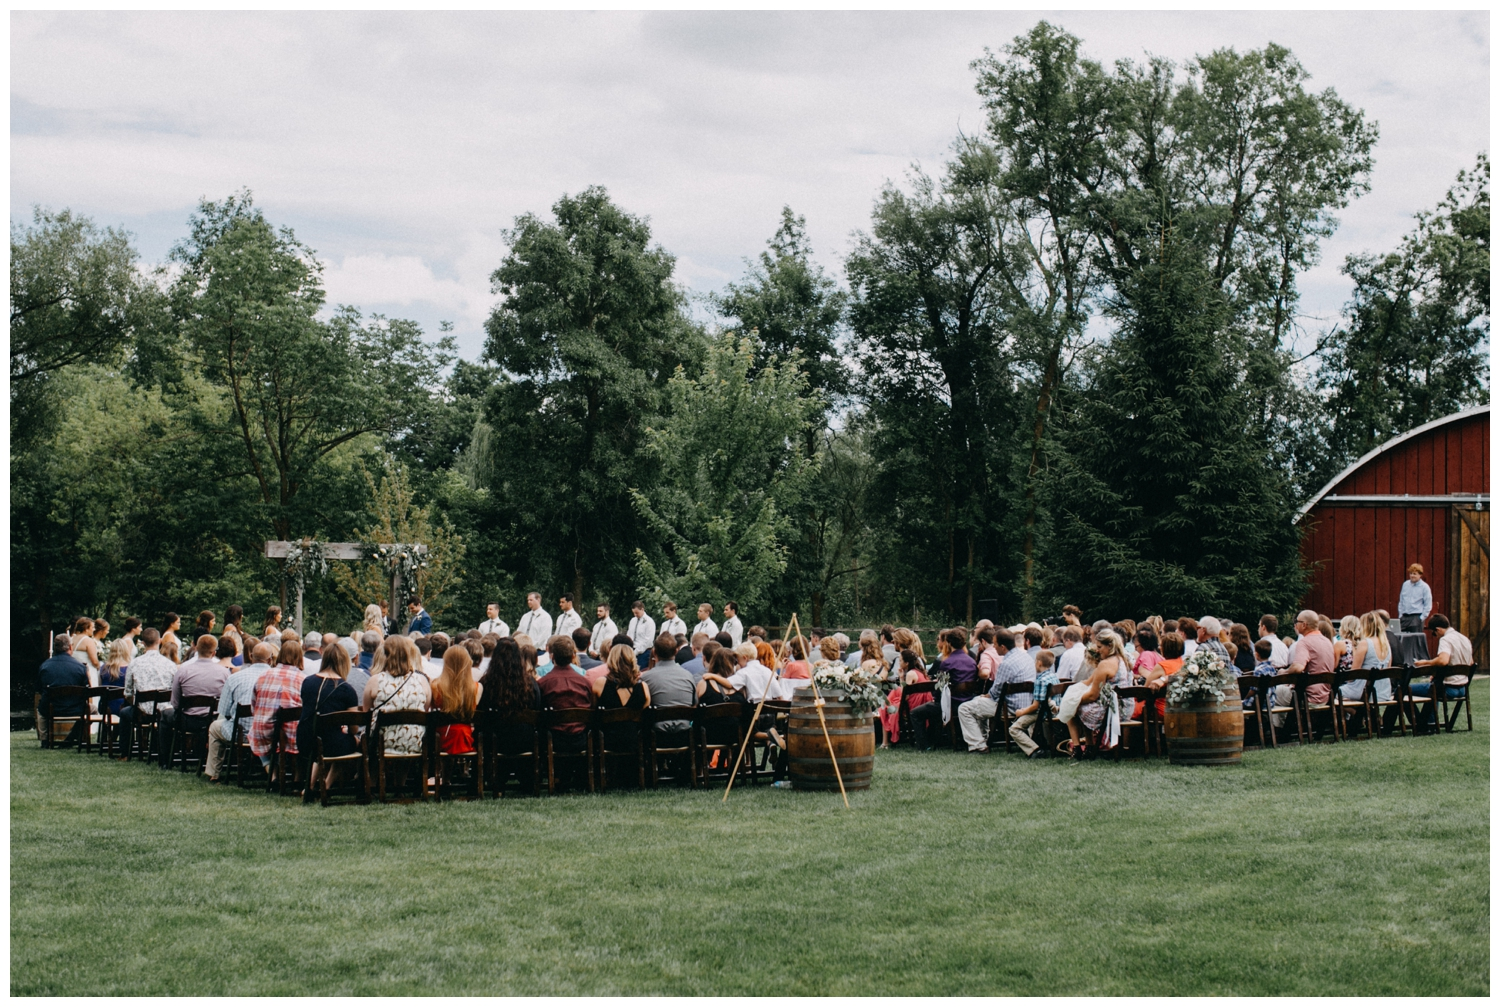 Creekside Farm outdoor wedding ceremony in July